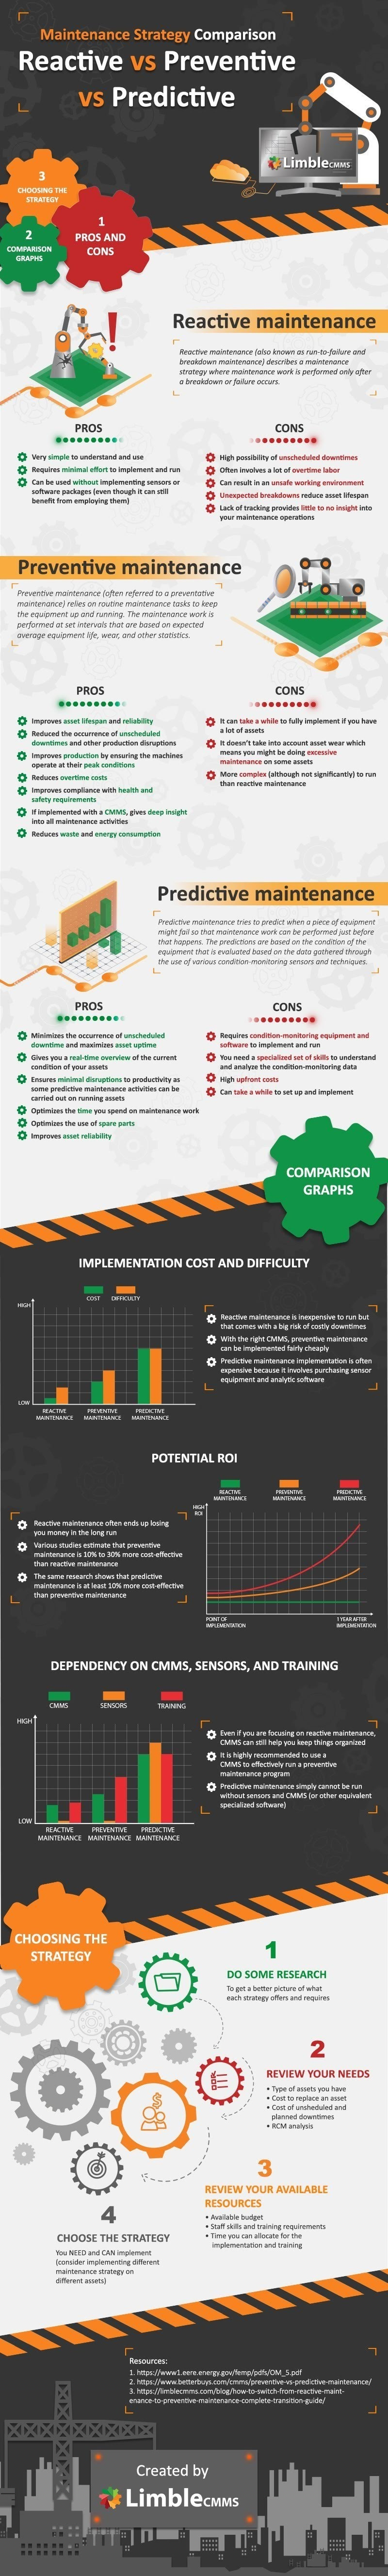 3 Reactive versus predictive types of maintenance strategy #infographic